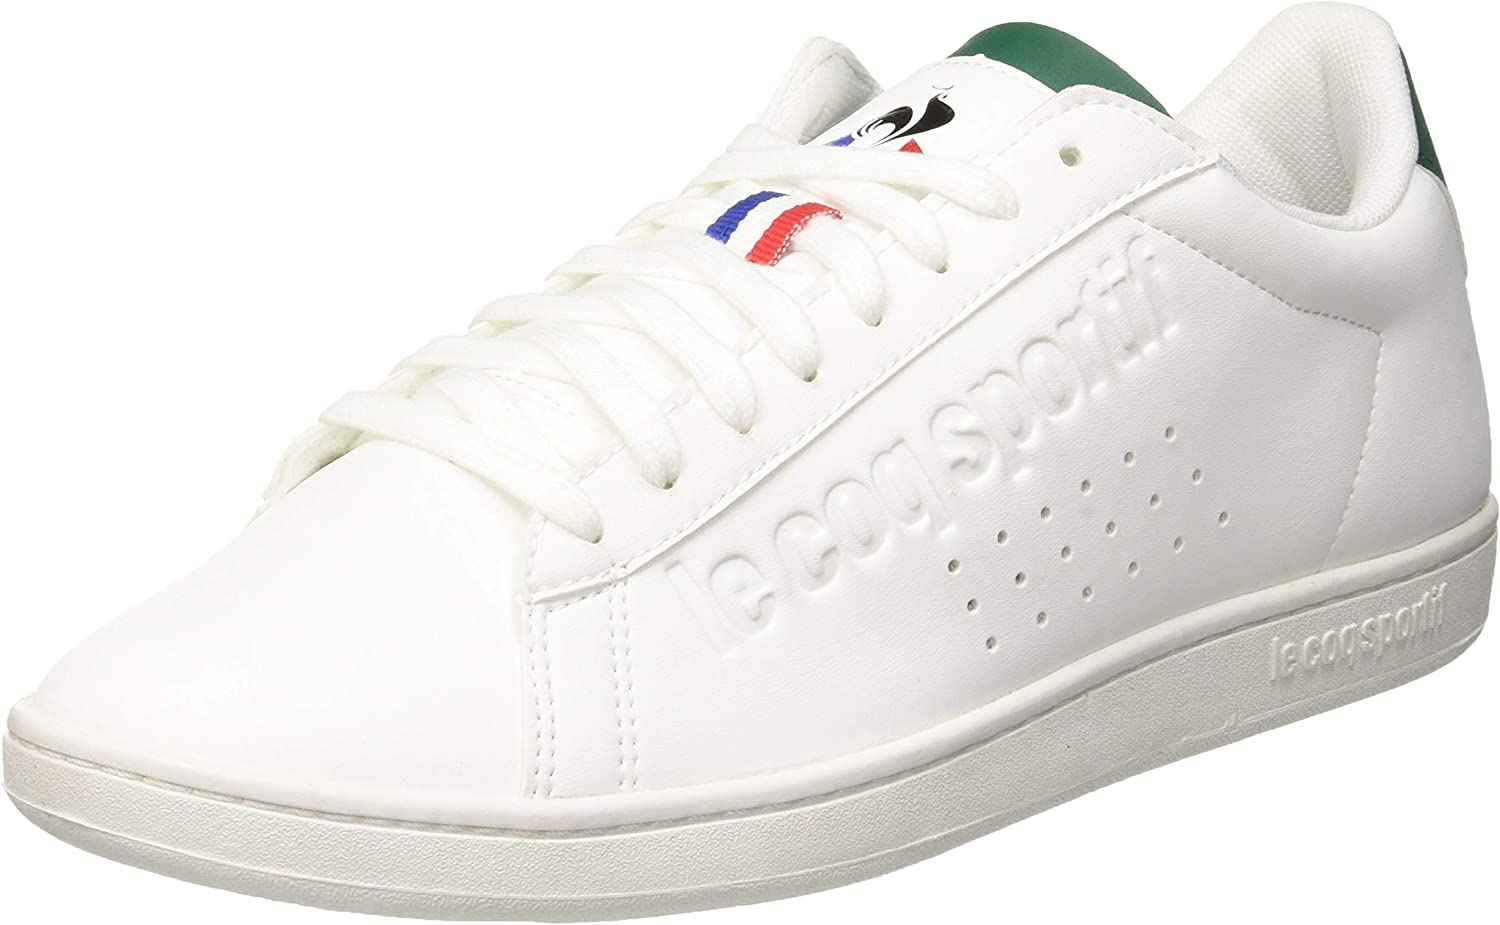 Le Coq Sportif Adults' Courtset Optical White Evergreen Trainers